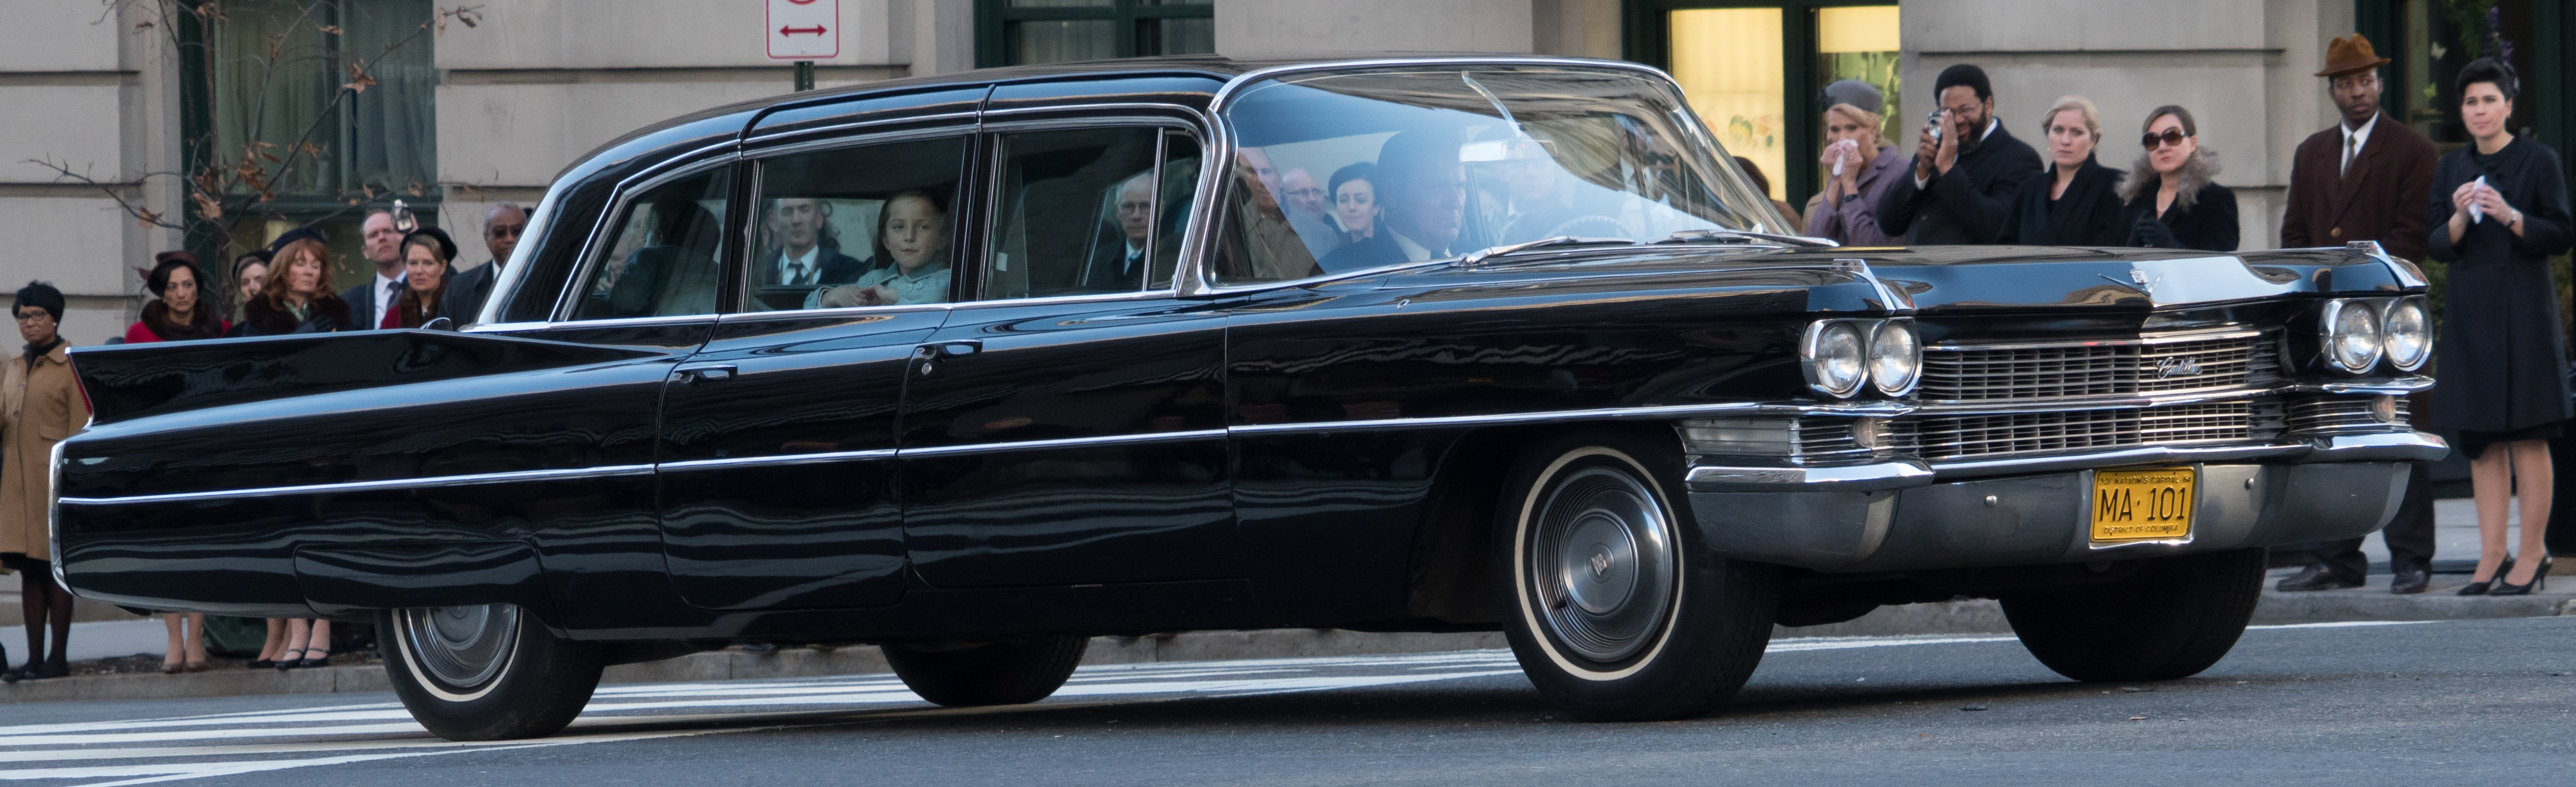 Photos: Natalie Portman Films Scenes For Jackie Kennedy Movie In